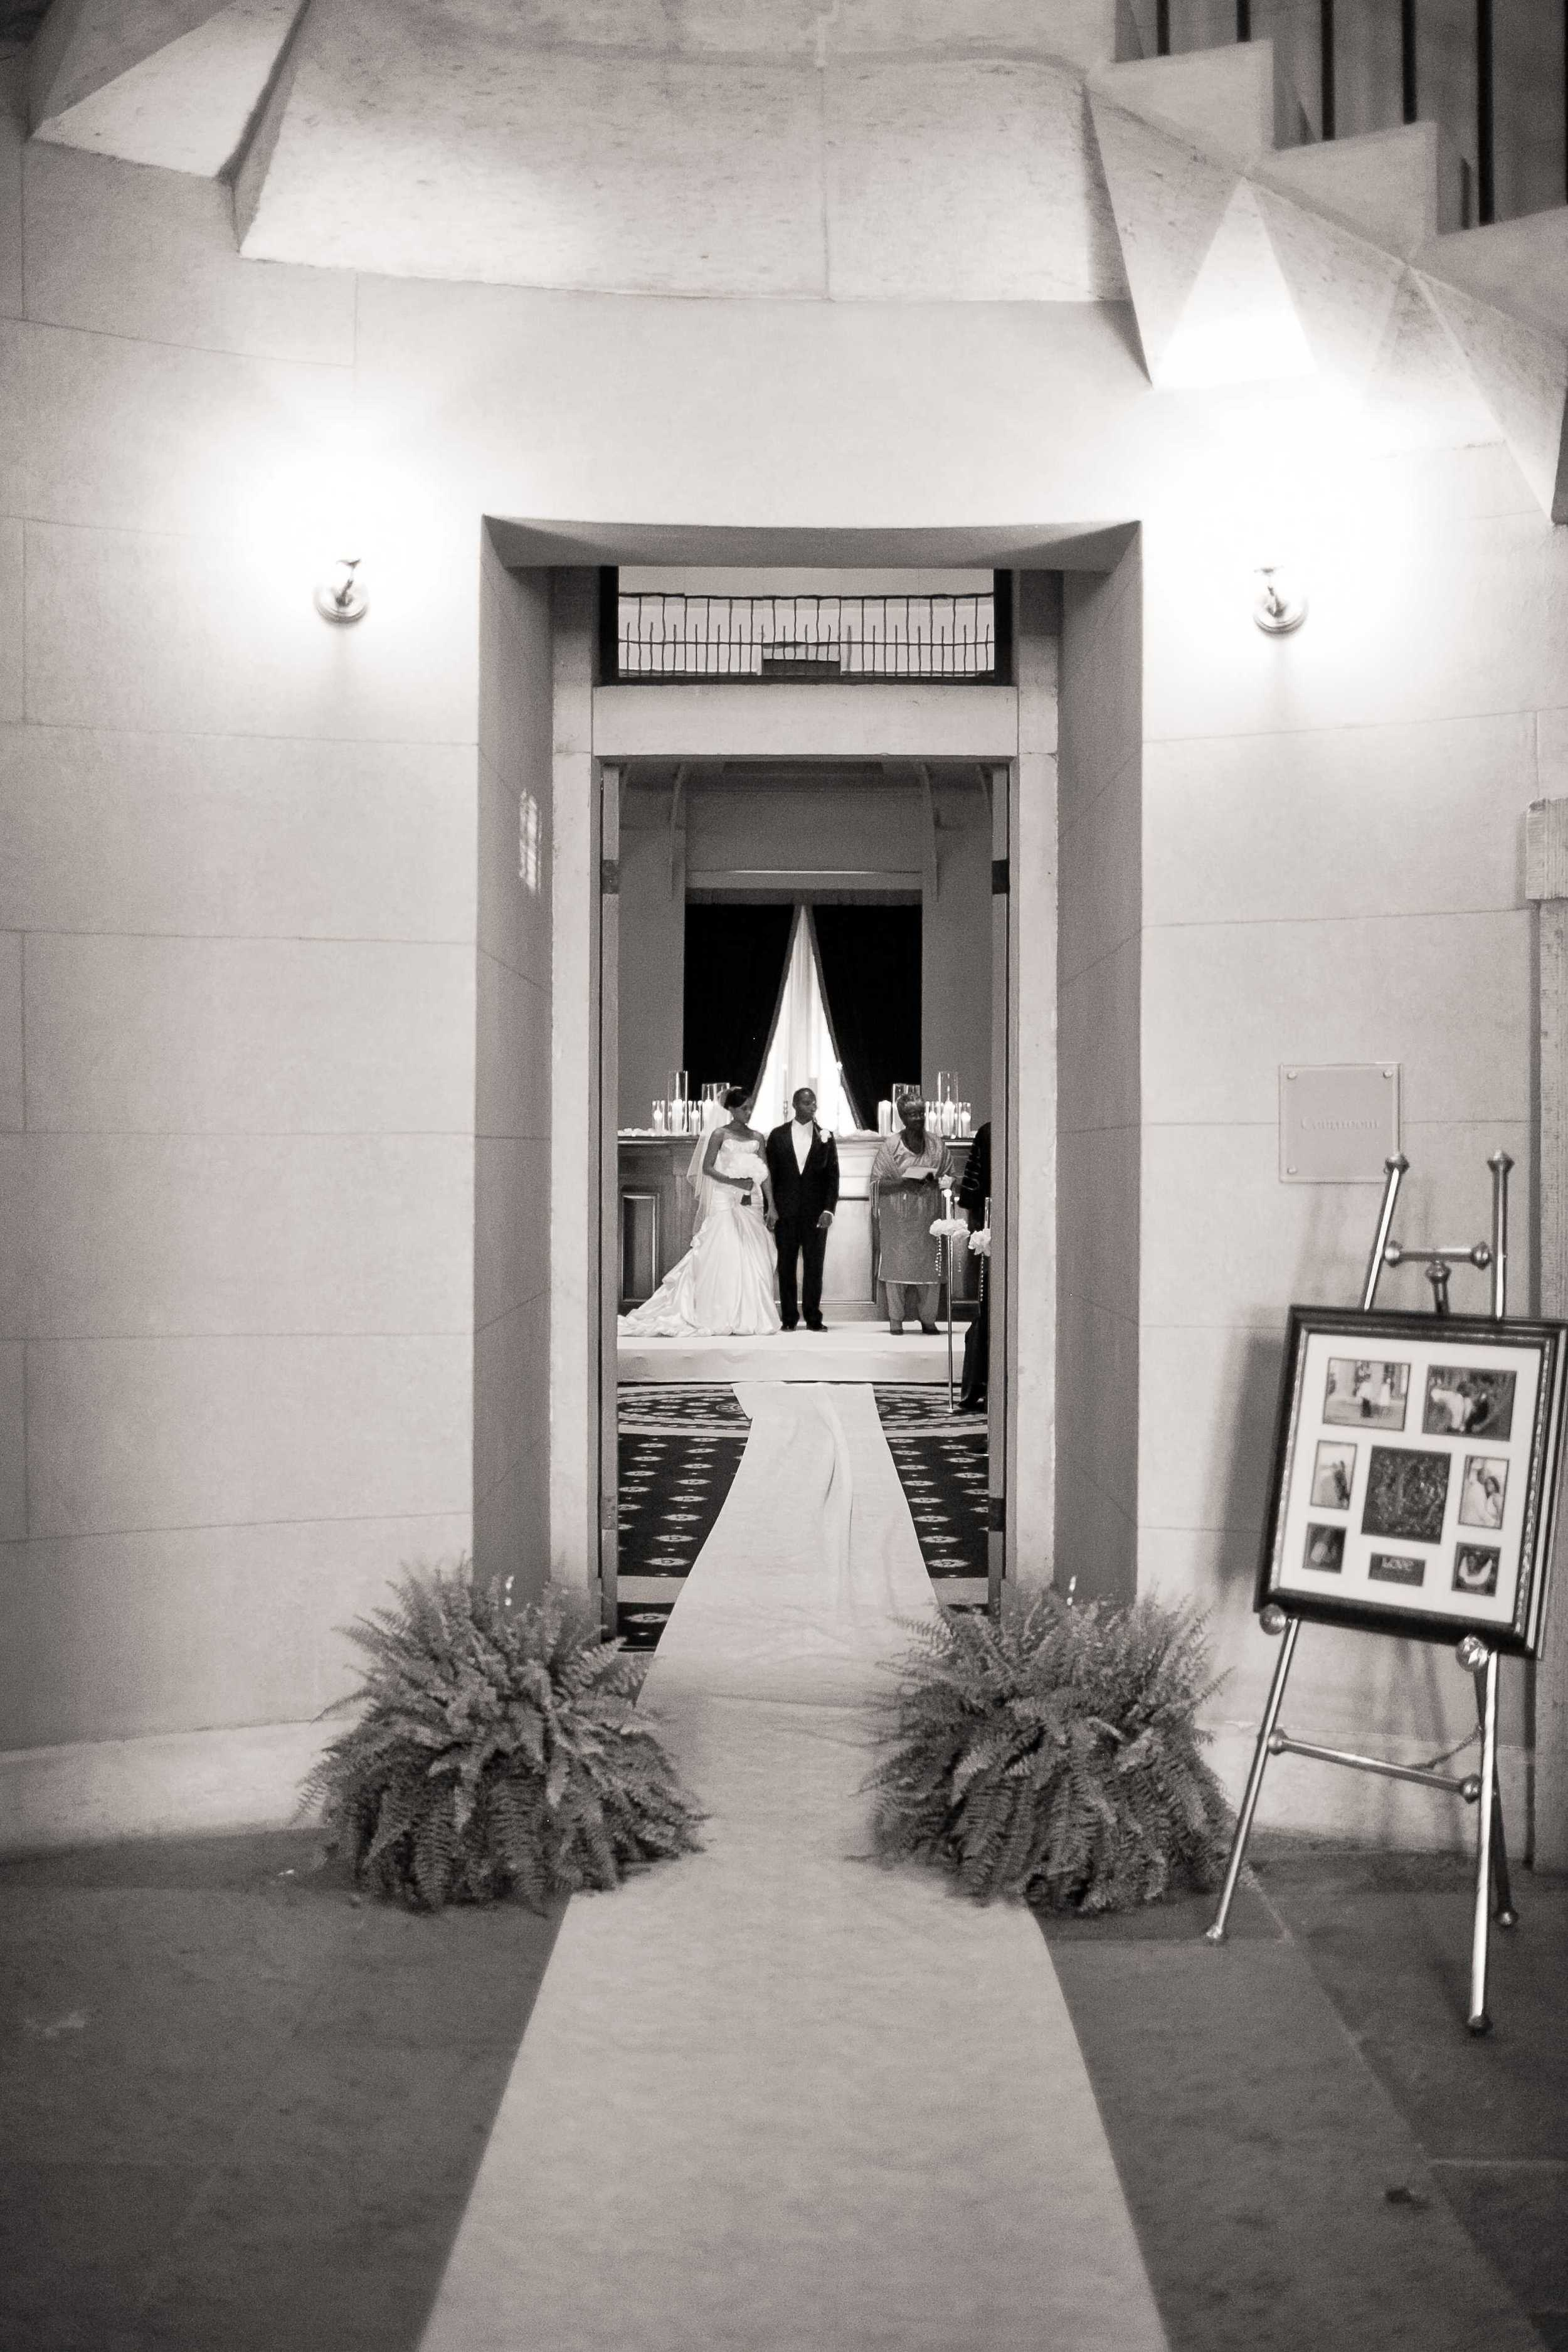 "img src=""httpwww.theparkwayevents.jpg"" alt=""San Francisco Bay Area Wedding Coordinator Bride and Groom Ceremony"".jpg"